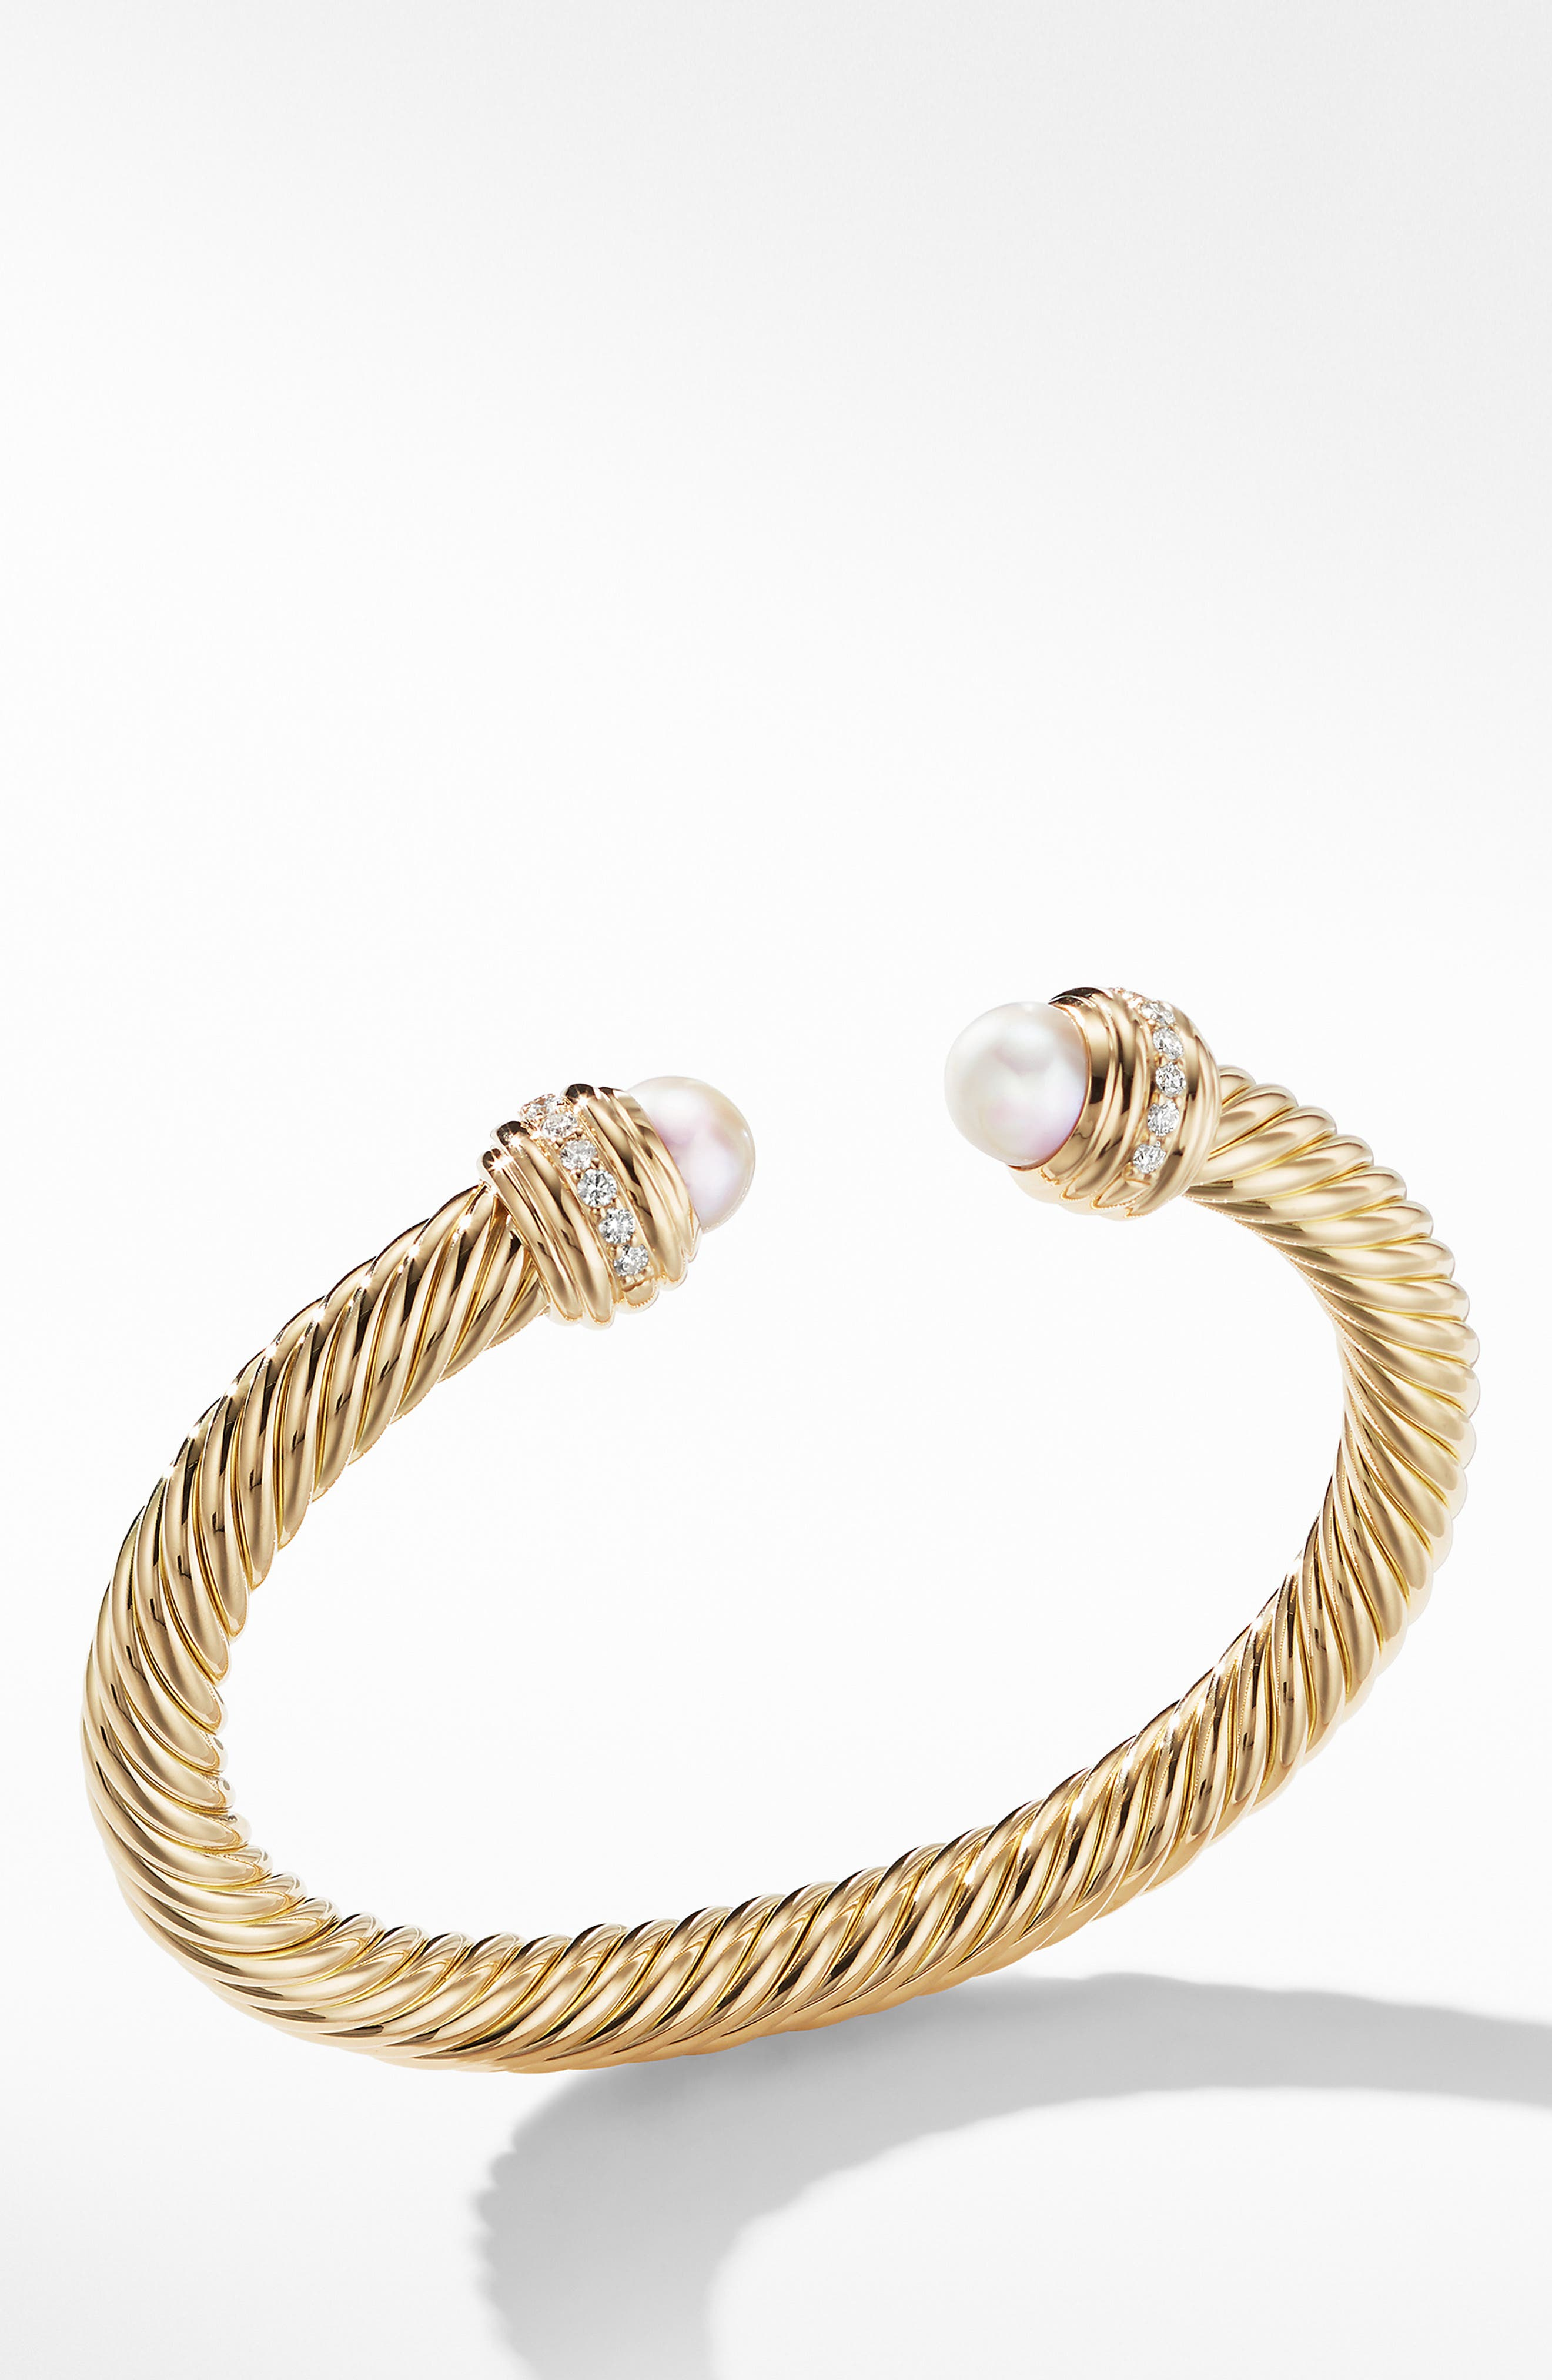 Cable Bracelet in 18K Gold with Diamonds,                         Main,                         color, YELLOW GOLD/ DIAMOND/ PEARL